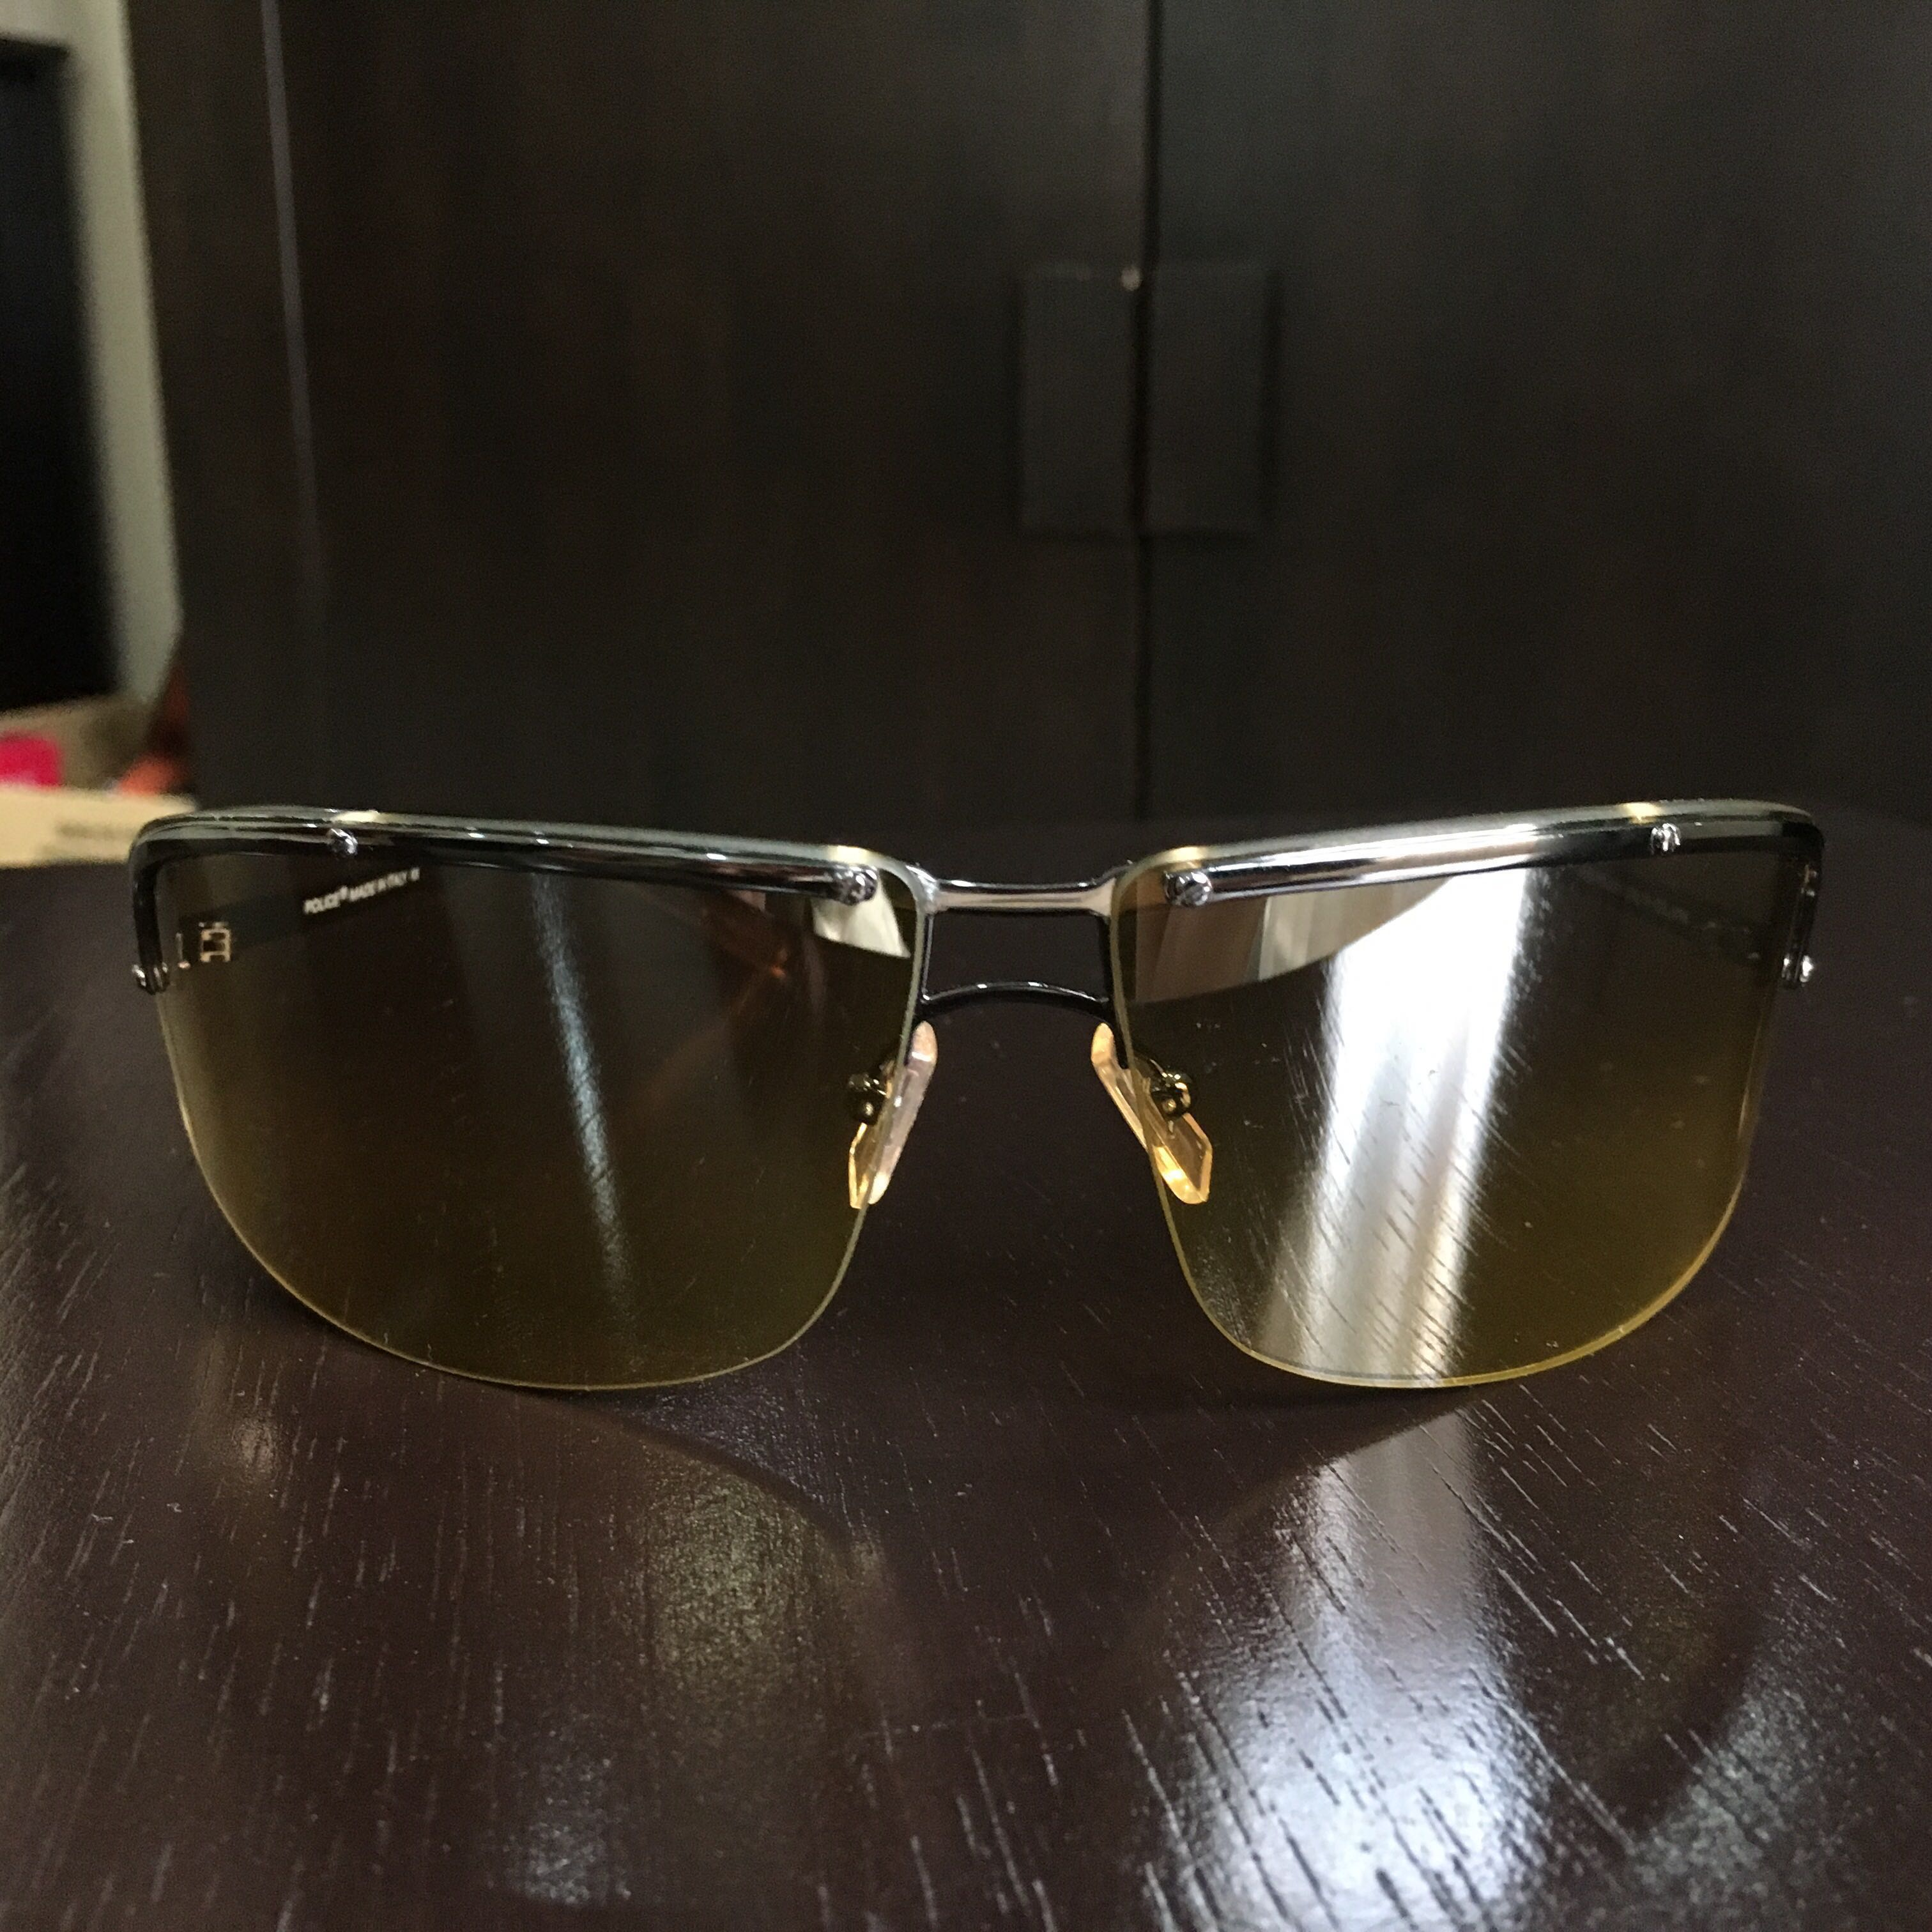 2087029fb6bc Police Sunglasses Made in Italy Unisex Vintage 2745 78 Col 579K #H&M50,  Men's Fashion, Accessories, Eyewear & Sunglasses on Carousell